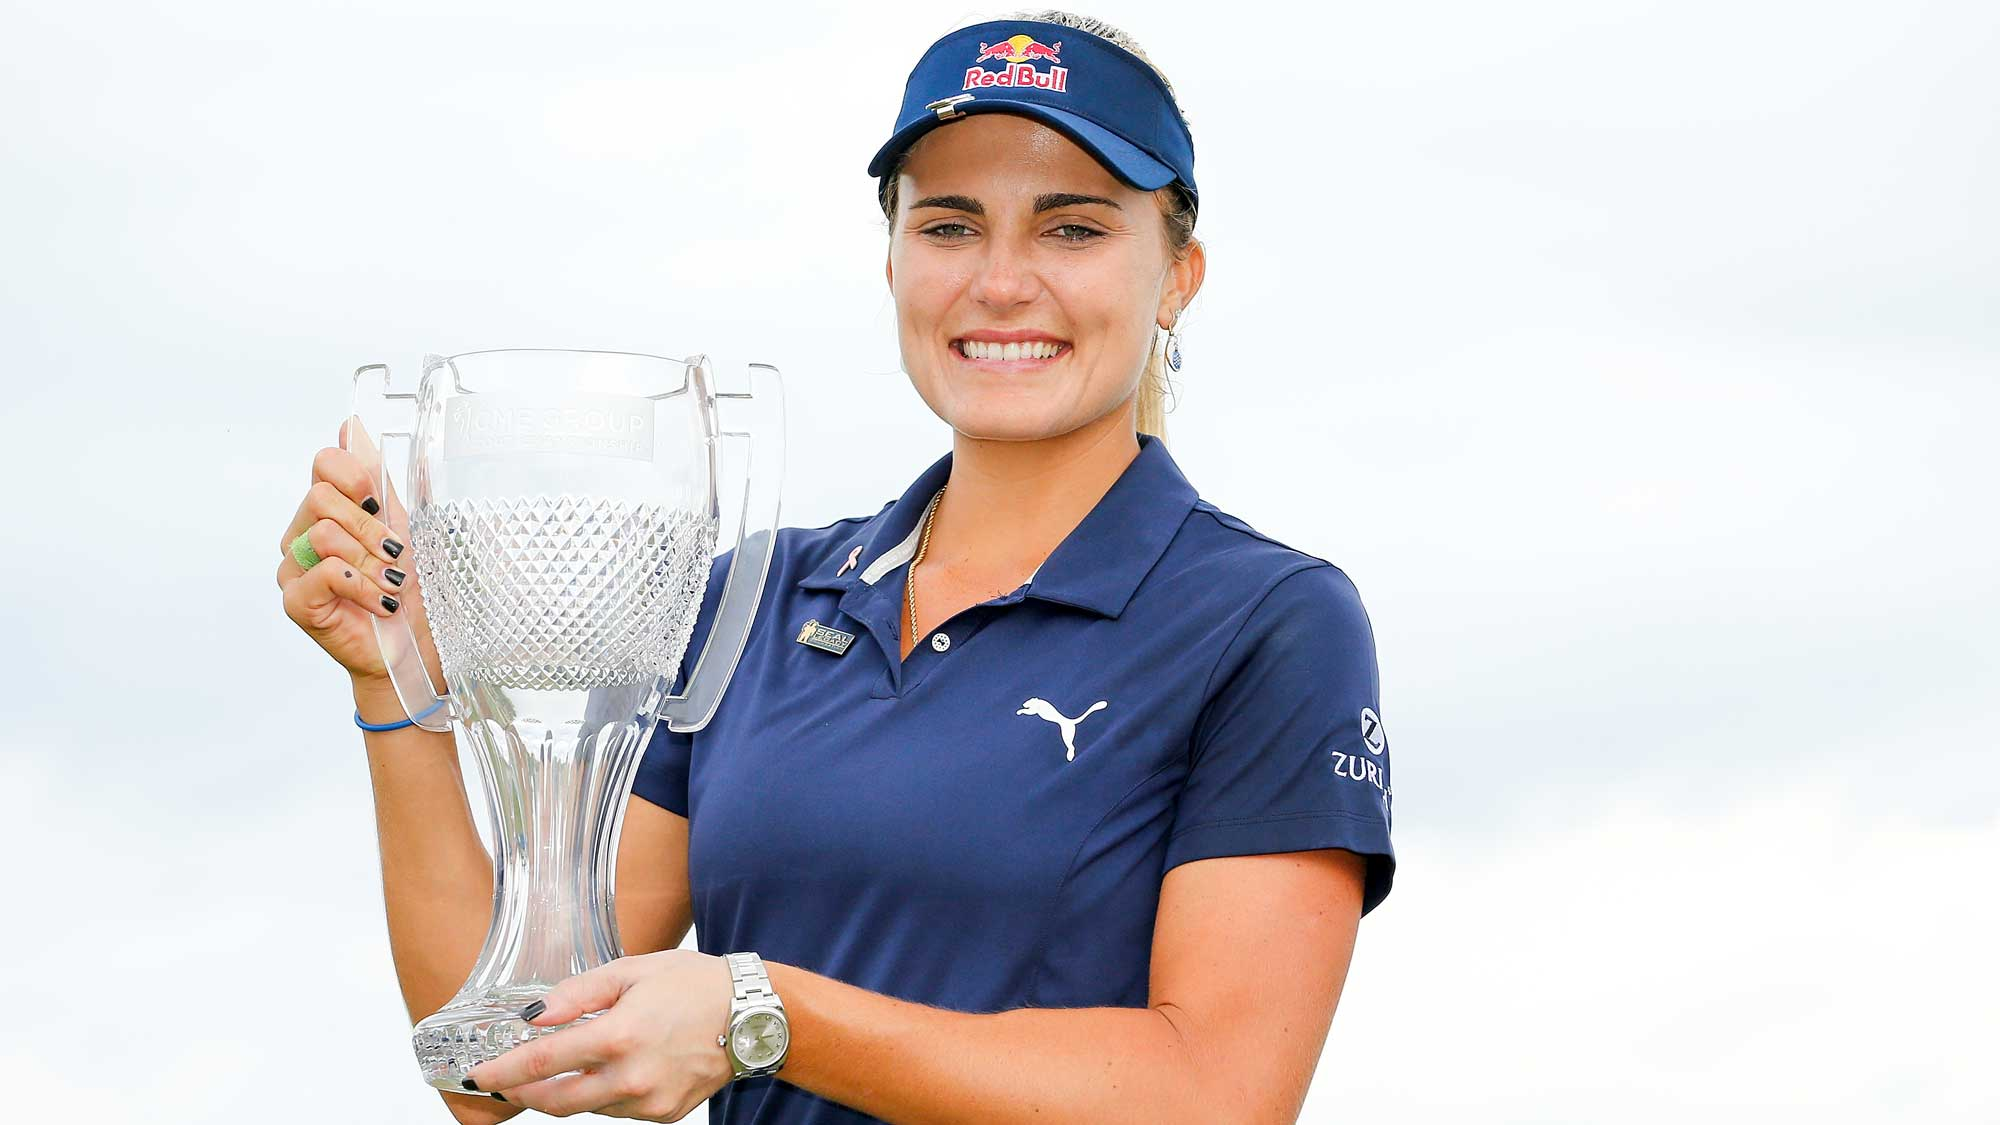 Lexi Thompson poses for a photo with the CME Group Tour Championship trophy